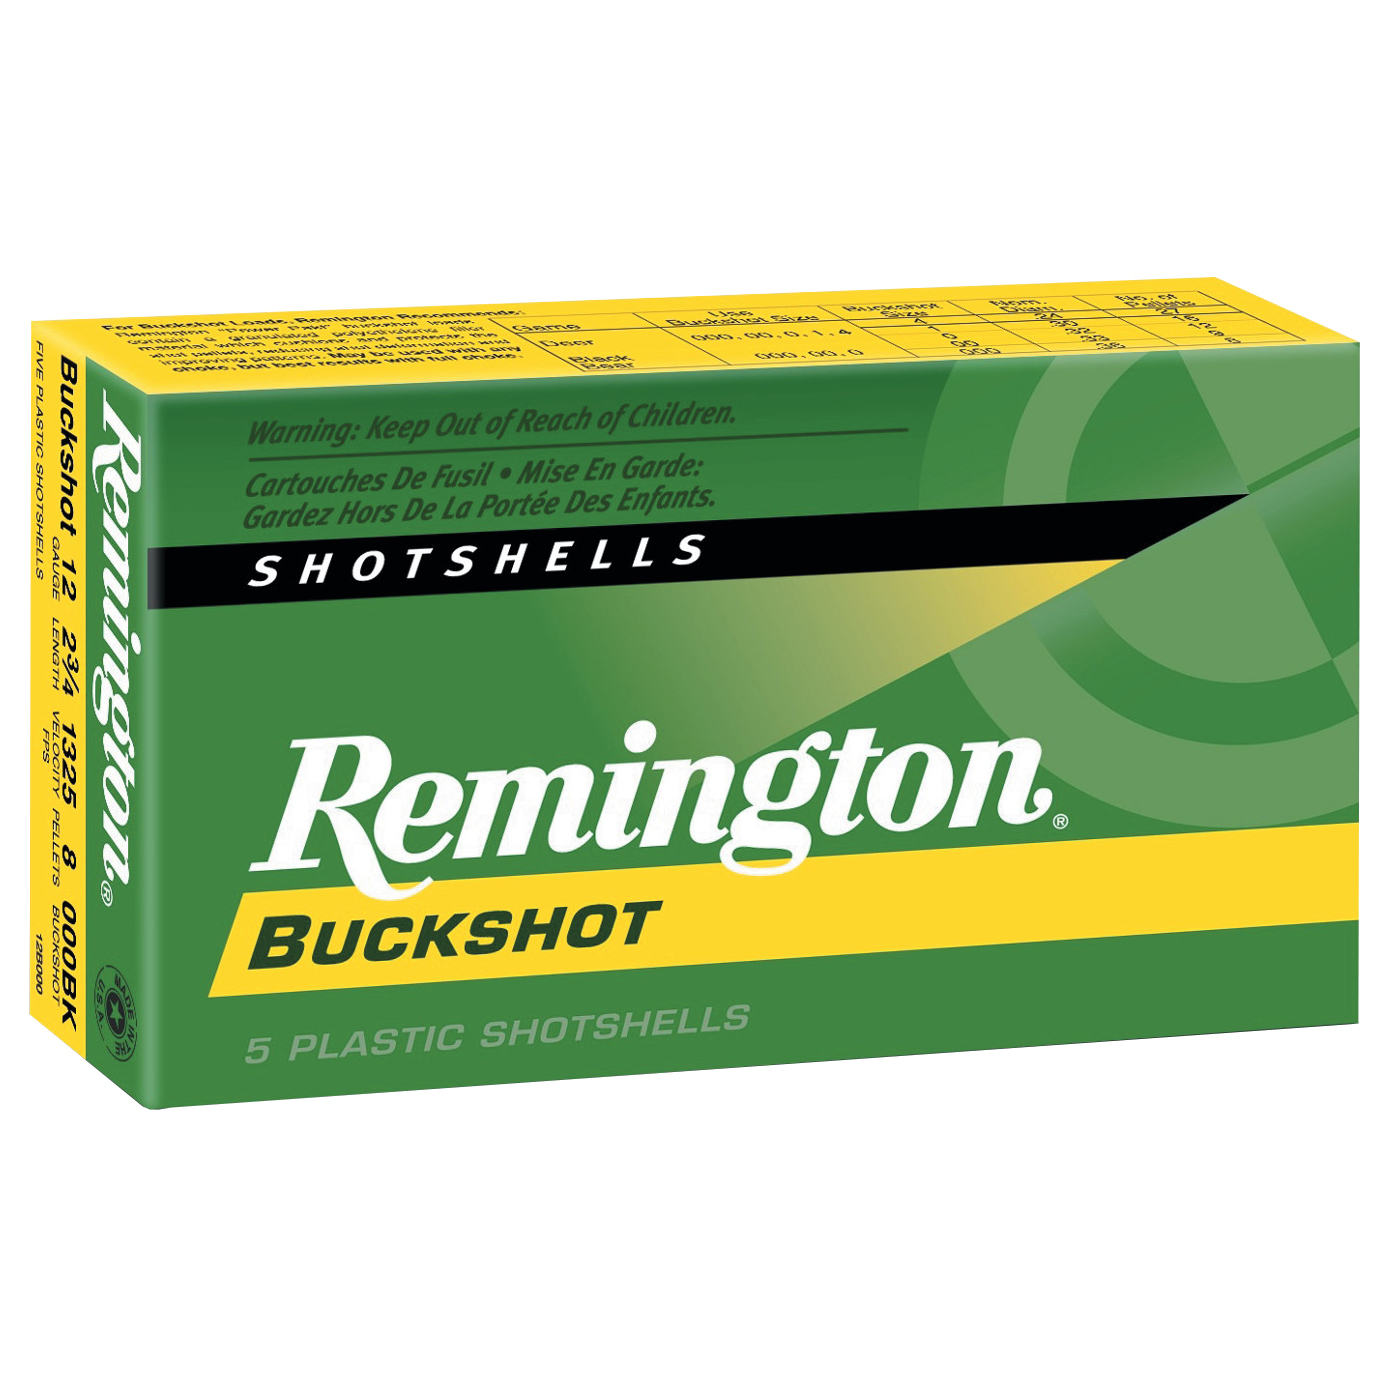 Remington Express Buckshot, 20-ga, 2-3/4″, 20 Pellets, #3, 5 Rounds